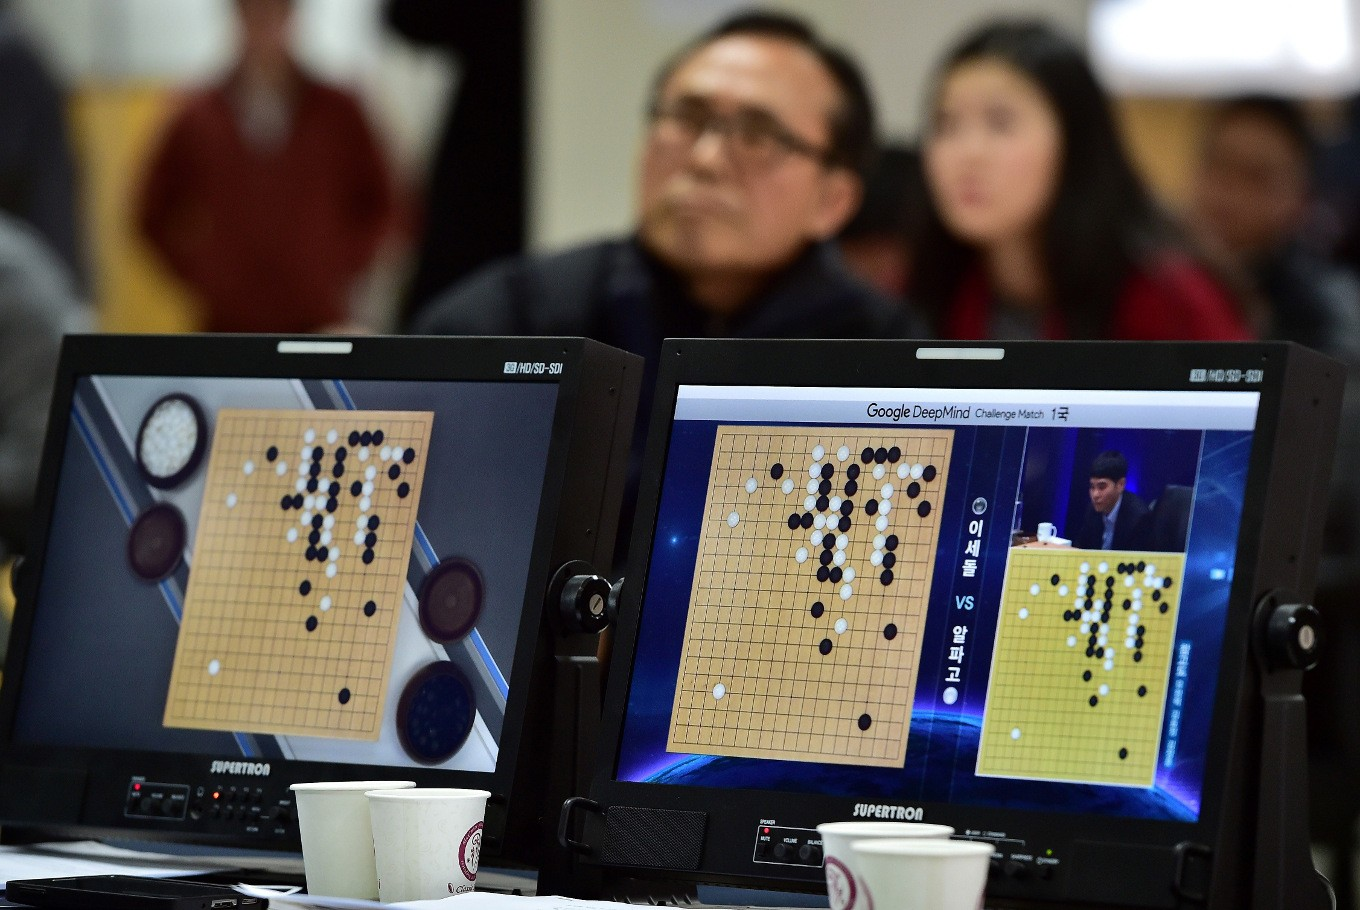 Go grandmaster says computers 'cannot be defeated'